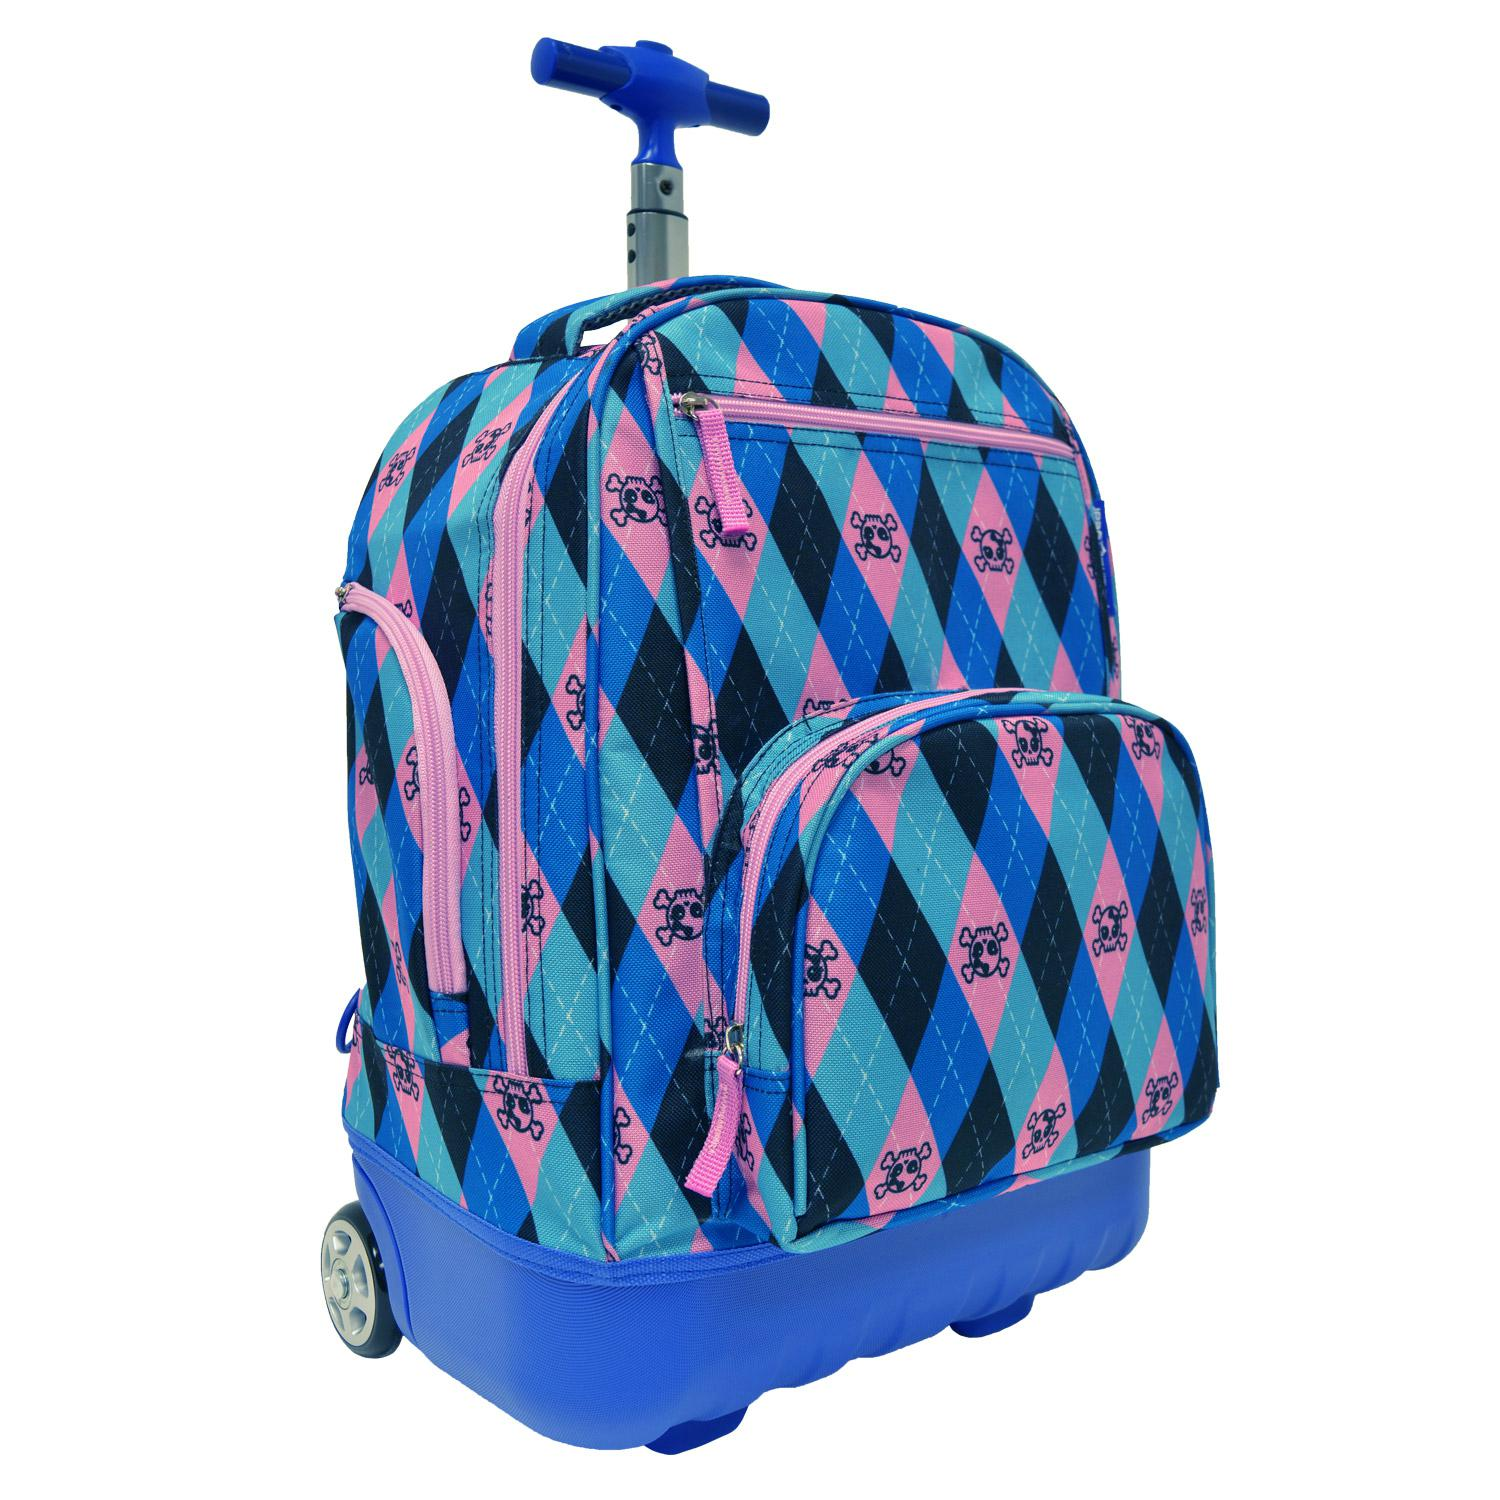 Pacific Gear Treasureland Kids Hybrid Lightweight Rolling Backpack